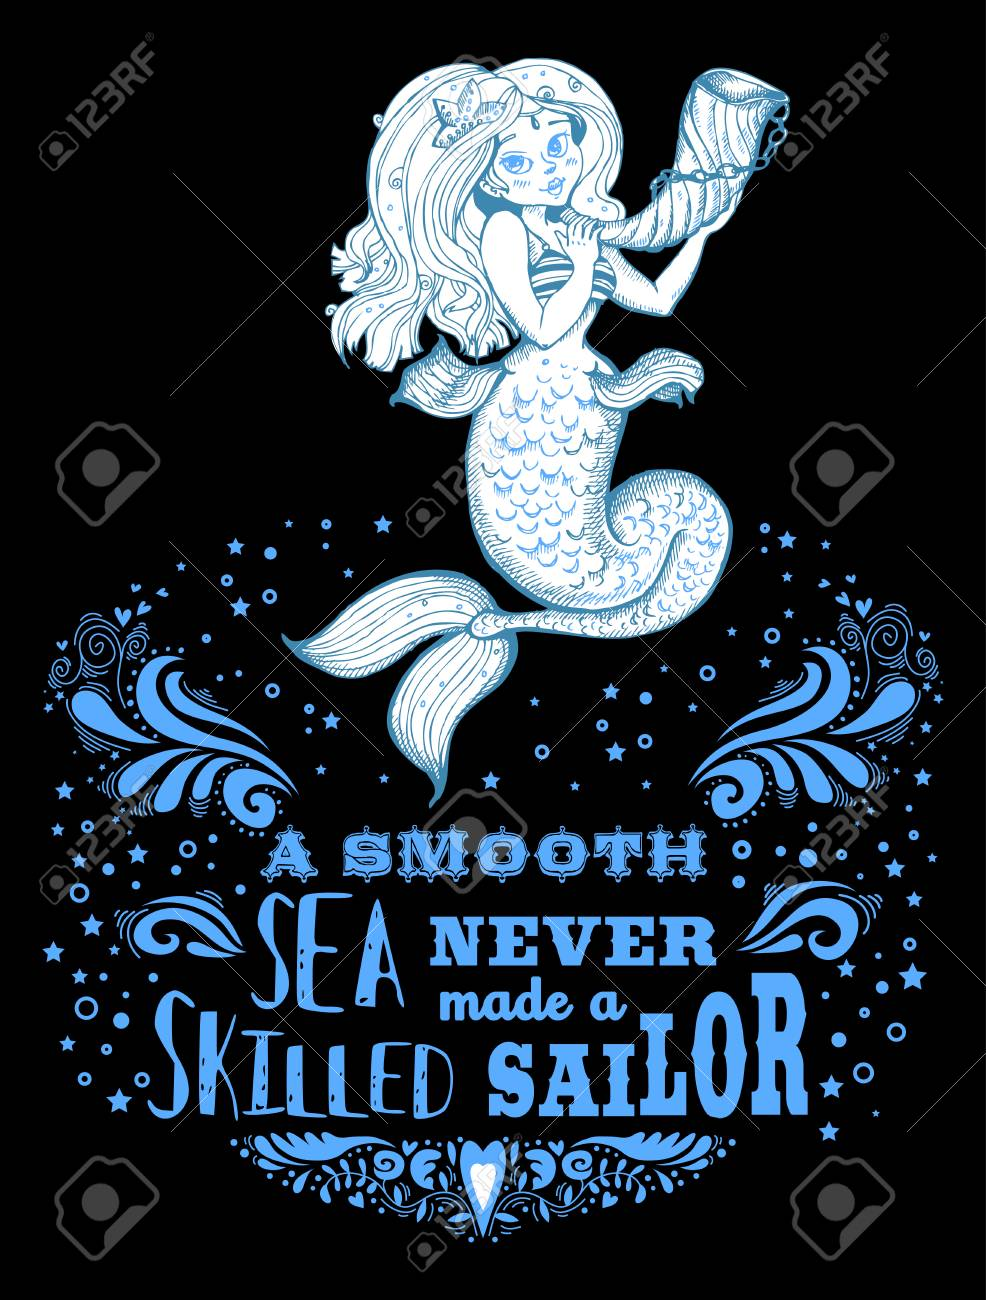 Hand Drawn Poster With Mermaid And And Text Fantasy Mythology